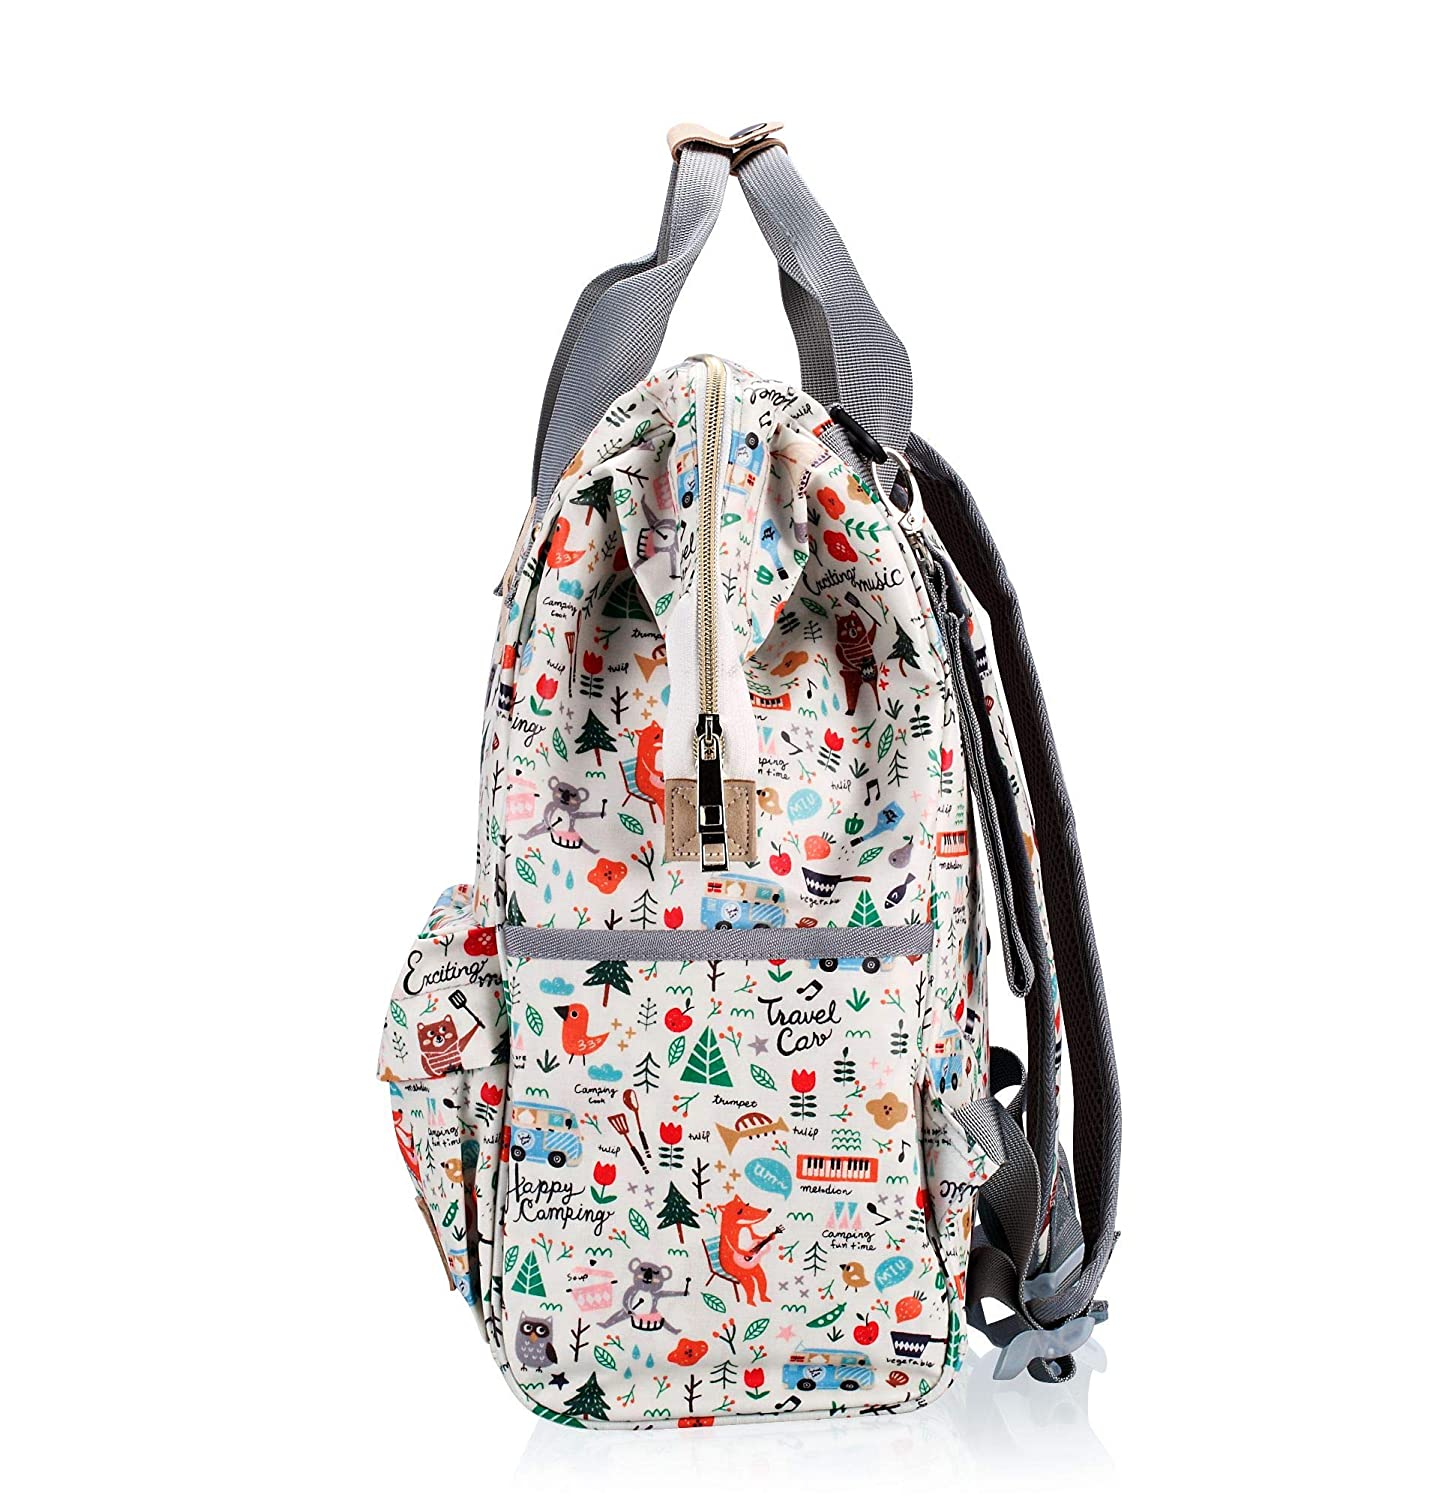 Diaper Bag Backpack,IHONEY Waterproof Cute Design Baby Nappy Backpack for Boys and Girls with Insulated Pockets /& Stroller Straps